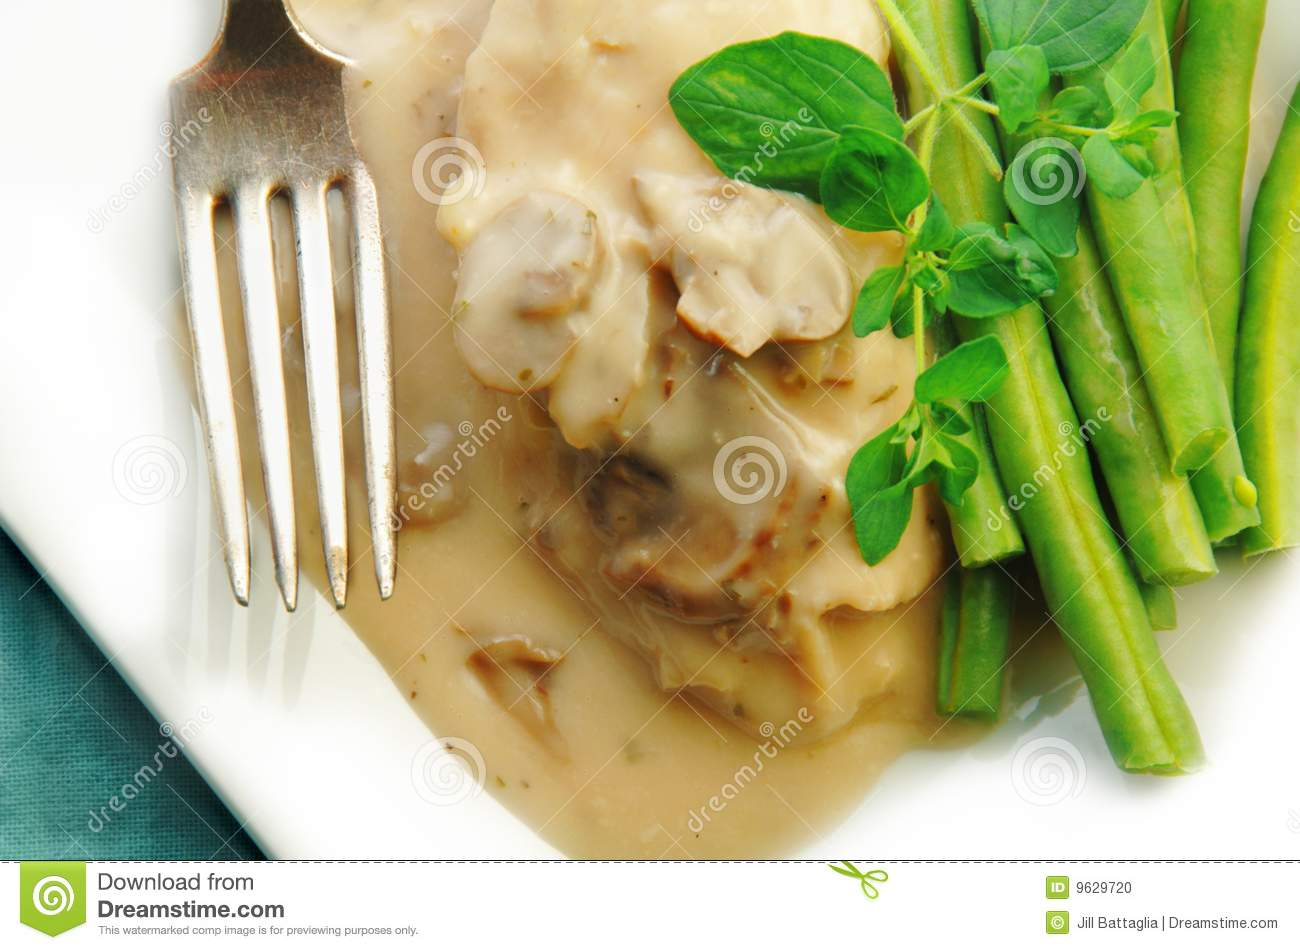 Chicken breast in a cream mushroom sauce with steamed green beans.